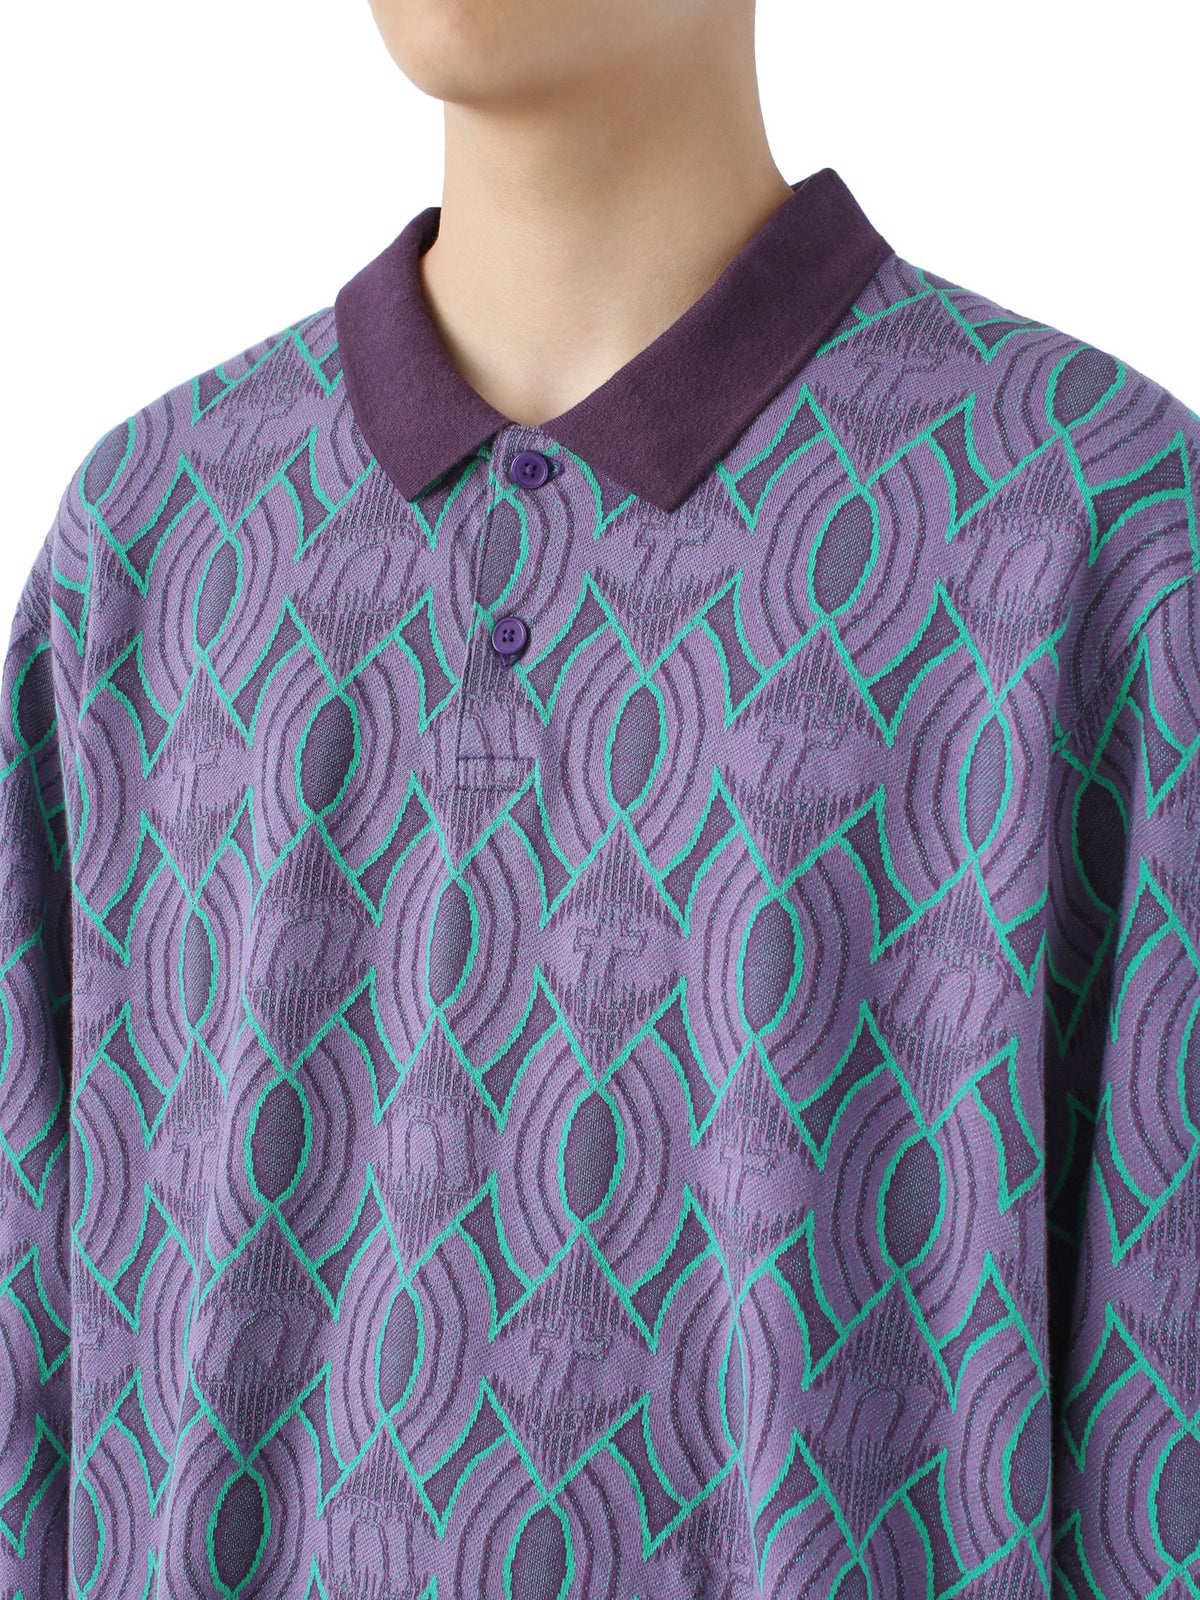 Jacquard Aztec L/SL Jersey Polo - thisisneverthat